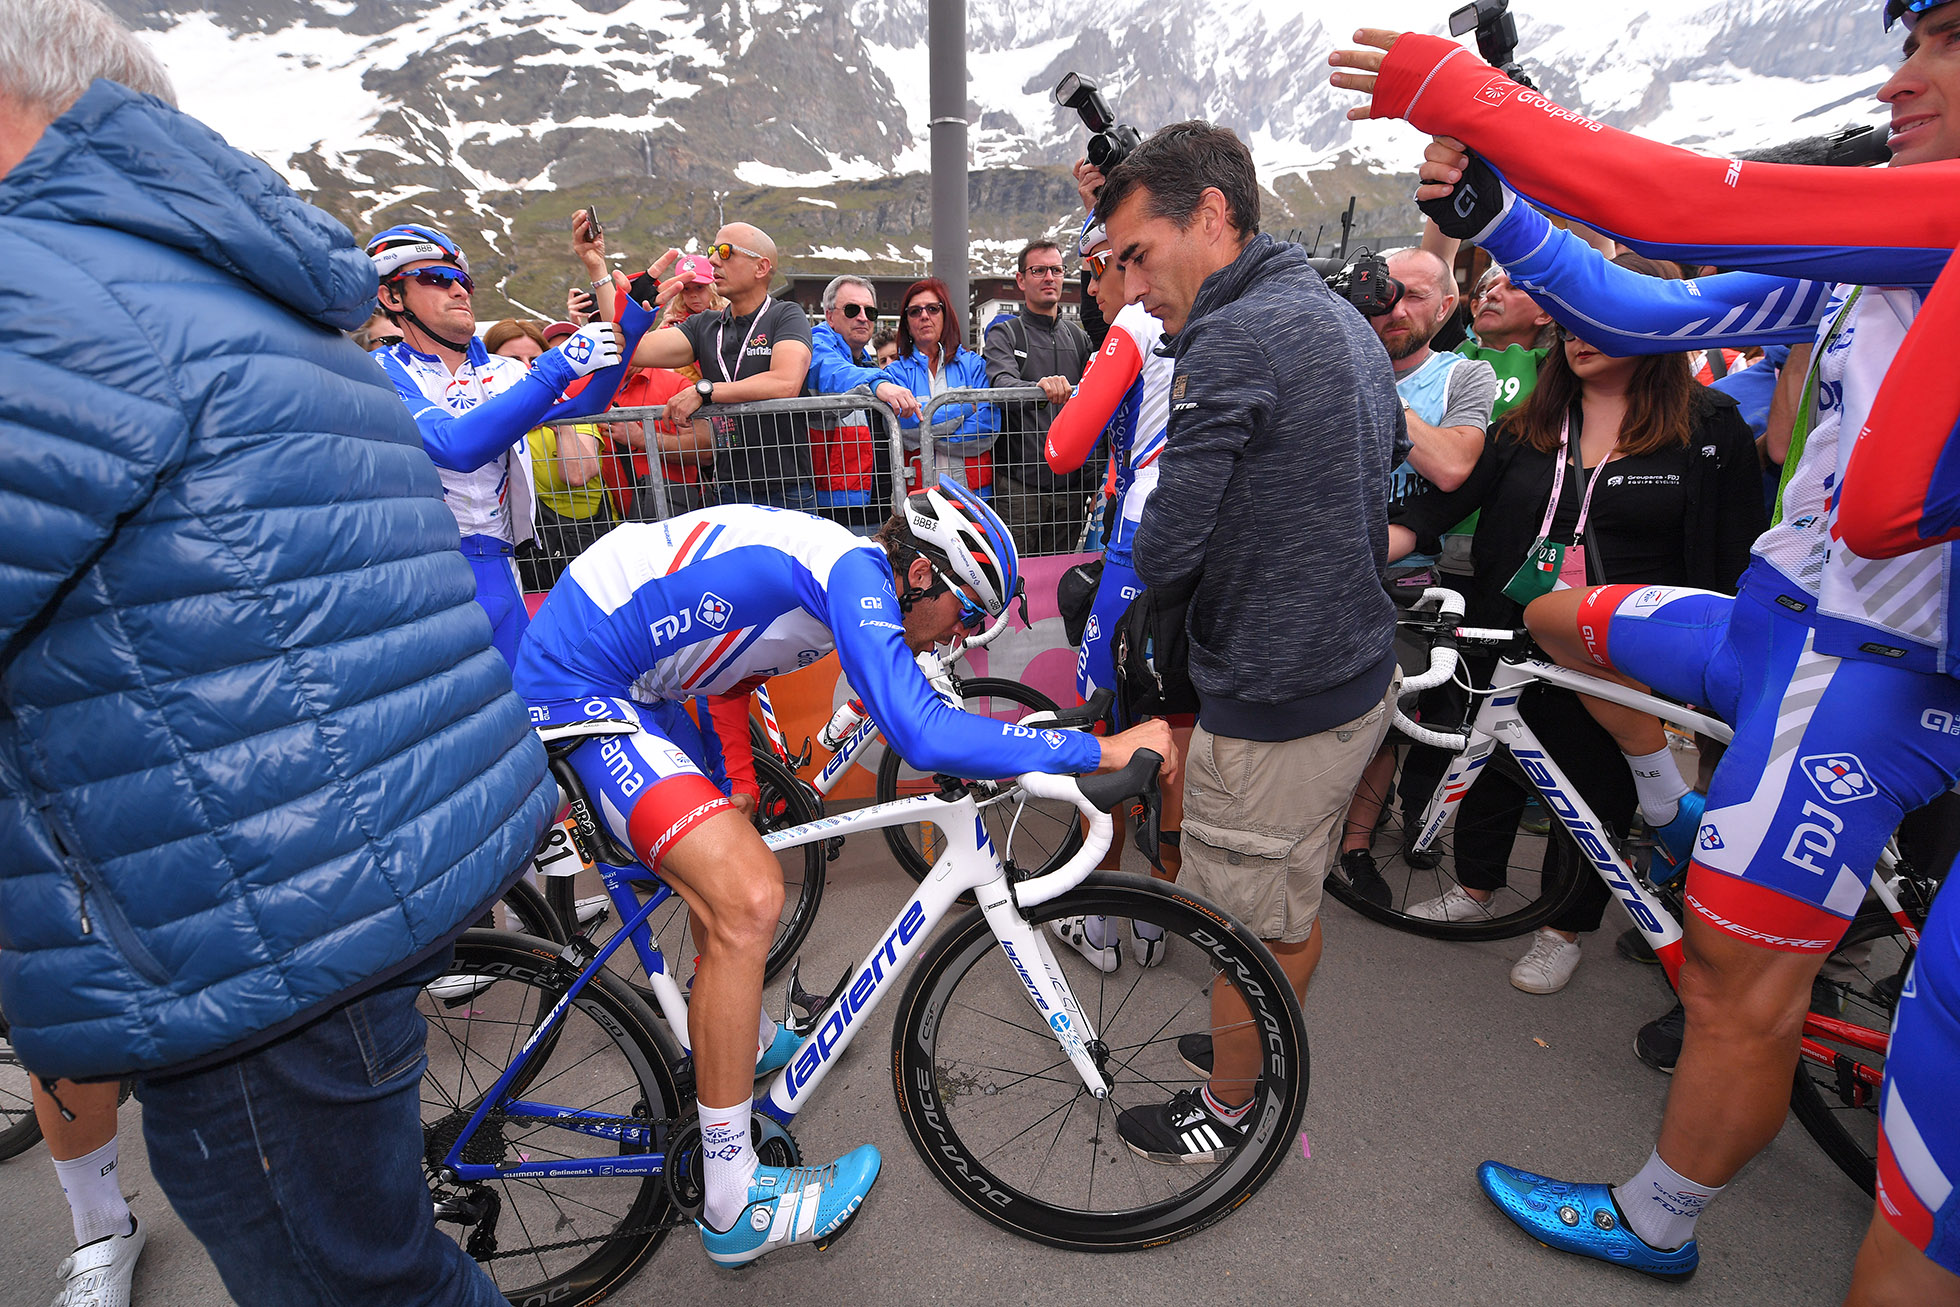 CERVINIA, ITALY - MAY 26: Arrival / Thibaut Pinot of France and Team Groupama-FDJ / Disappointment / during the 101st Tour of Italy 2018, Stage 20 a 214km stage from Susa to Cervinia 2001m / Giro d'Italia / on May 26, 2018 in Cervinia, Italy. (Photo by Tim de Waele/Getty Images)